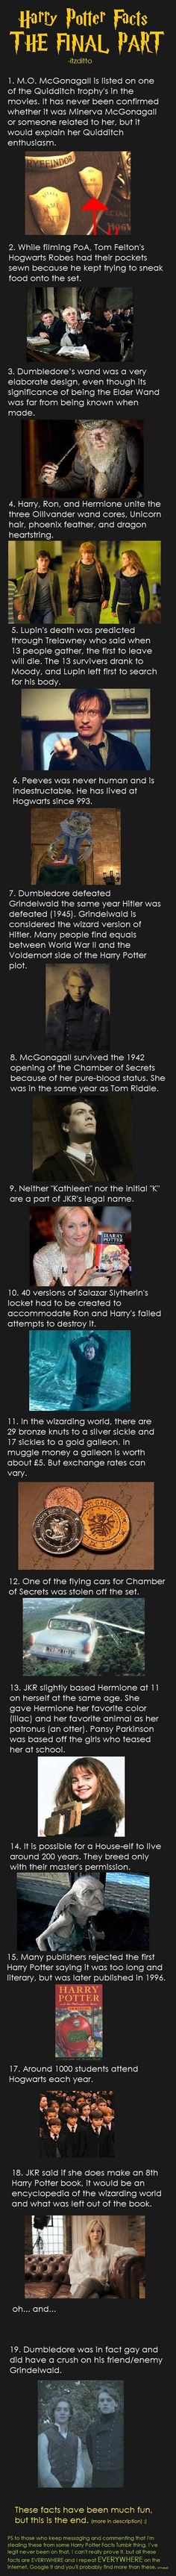 Harry Potter Facts 9 (The Final Part) - Imgur